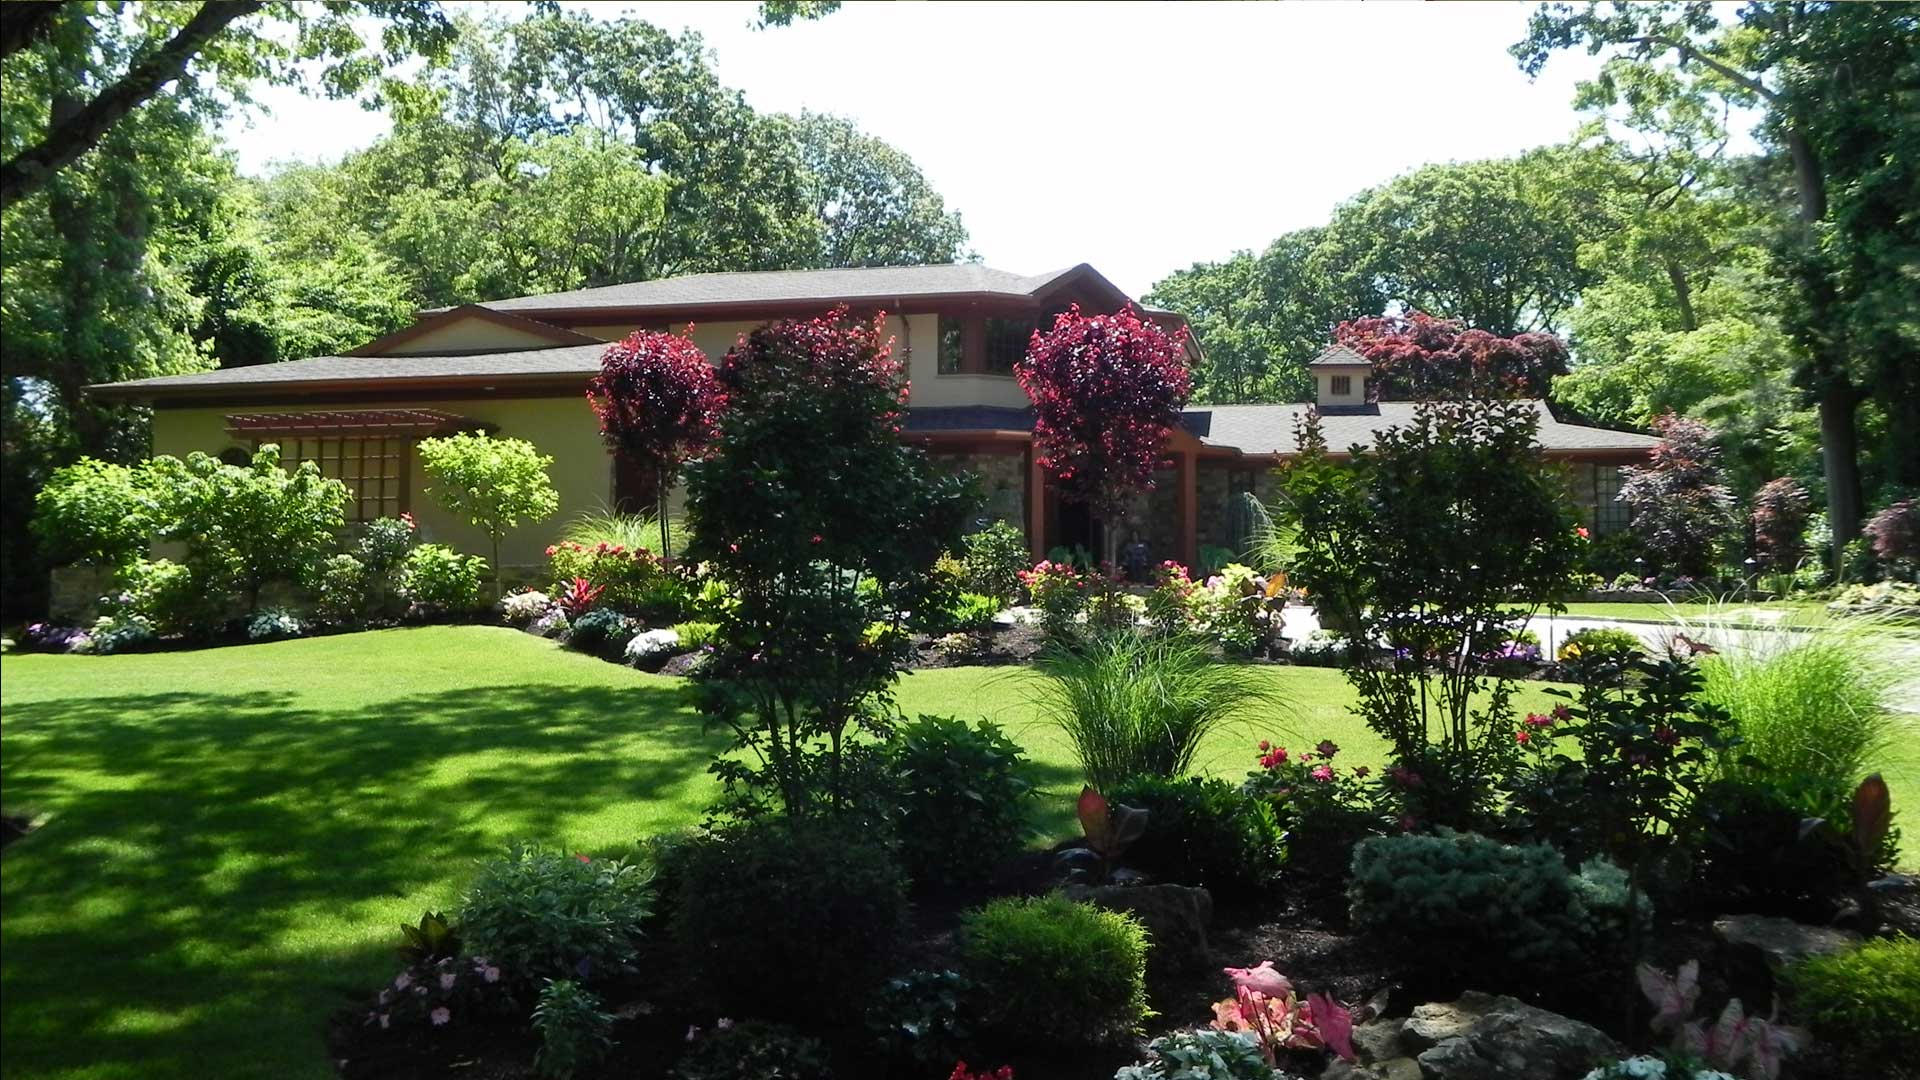 Vintage Homes Inc. Home Building, Home Remodeling and Home Re-Construction